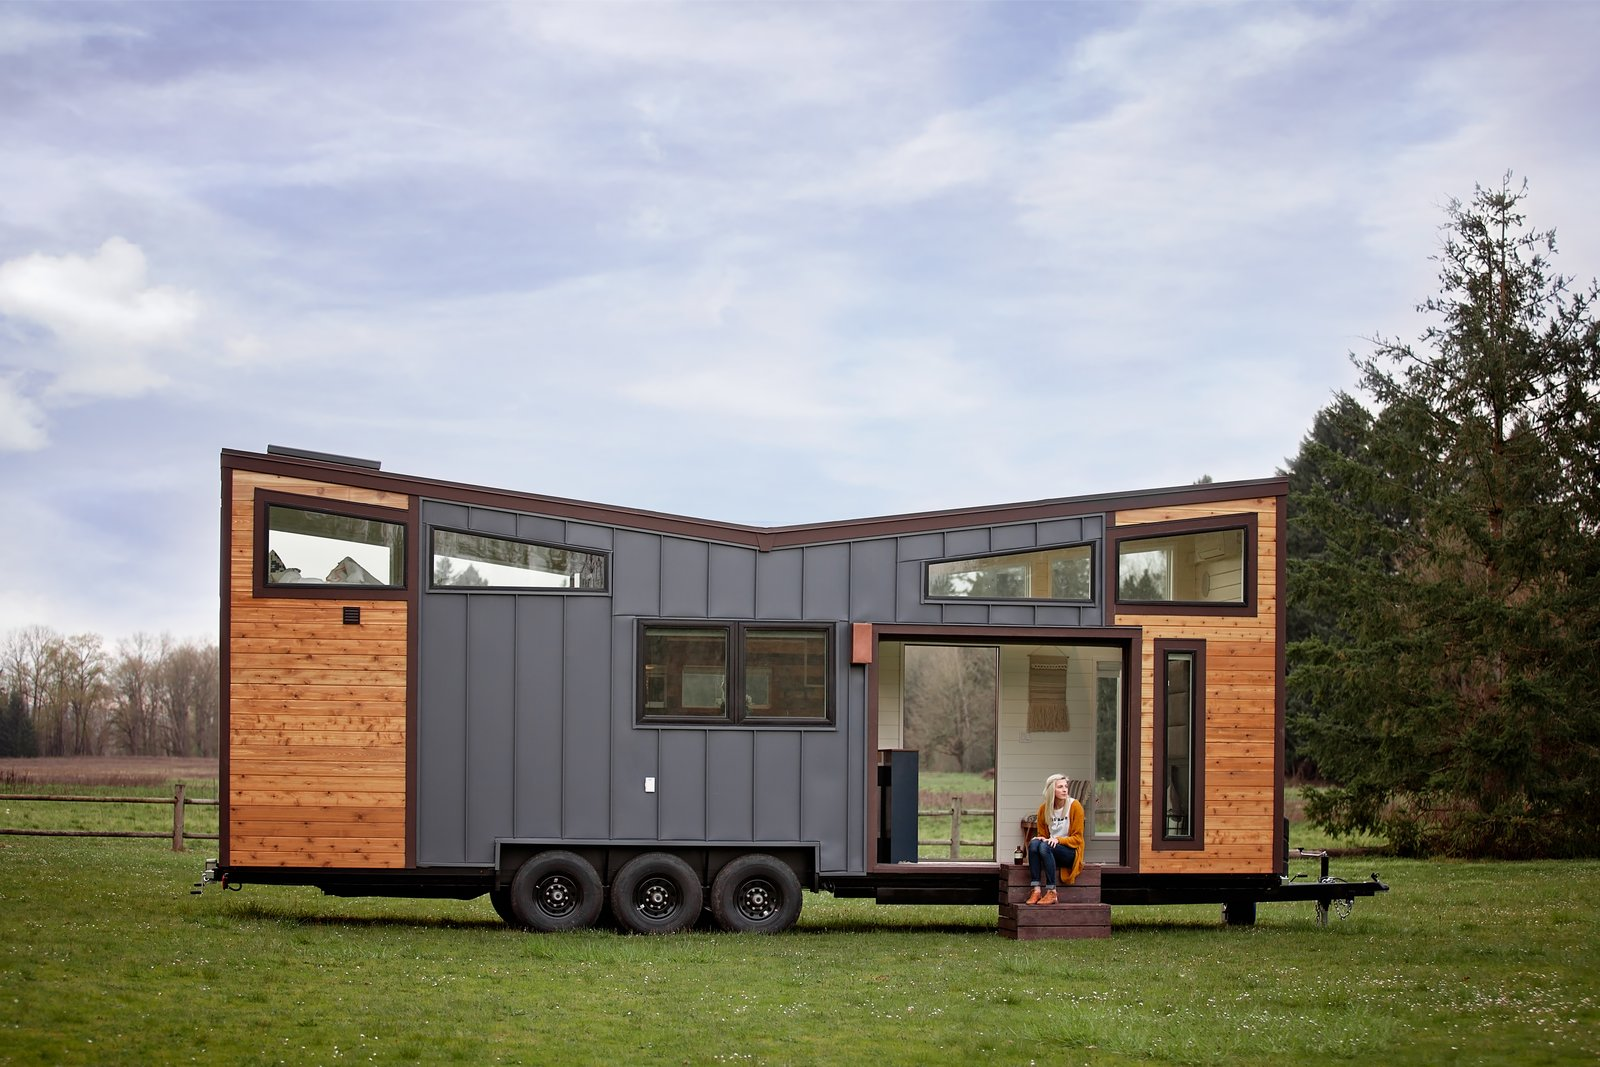 Best Small Travel Trailer >> This Oregon Company Crafts Exceptional Tiny Homes Starting ...